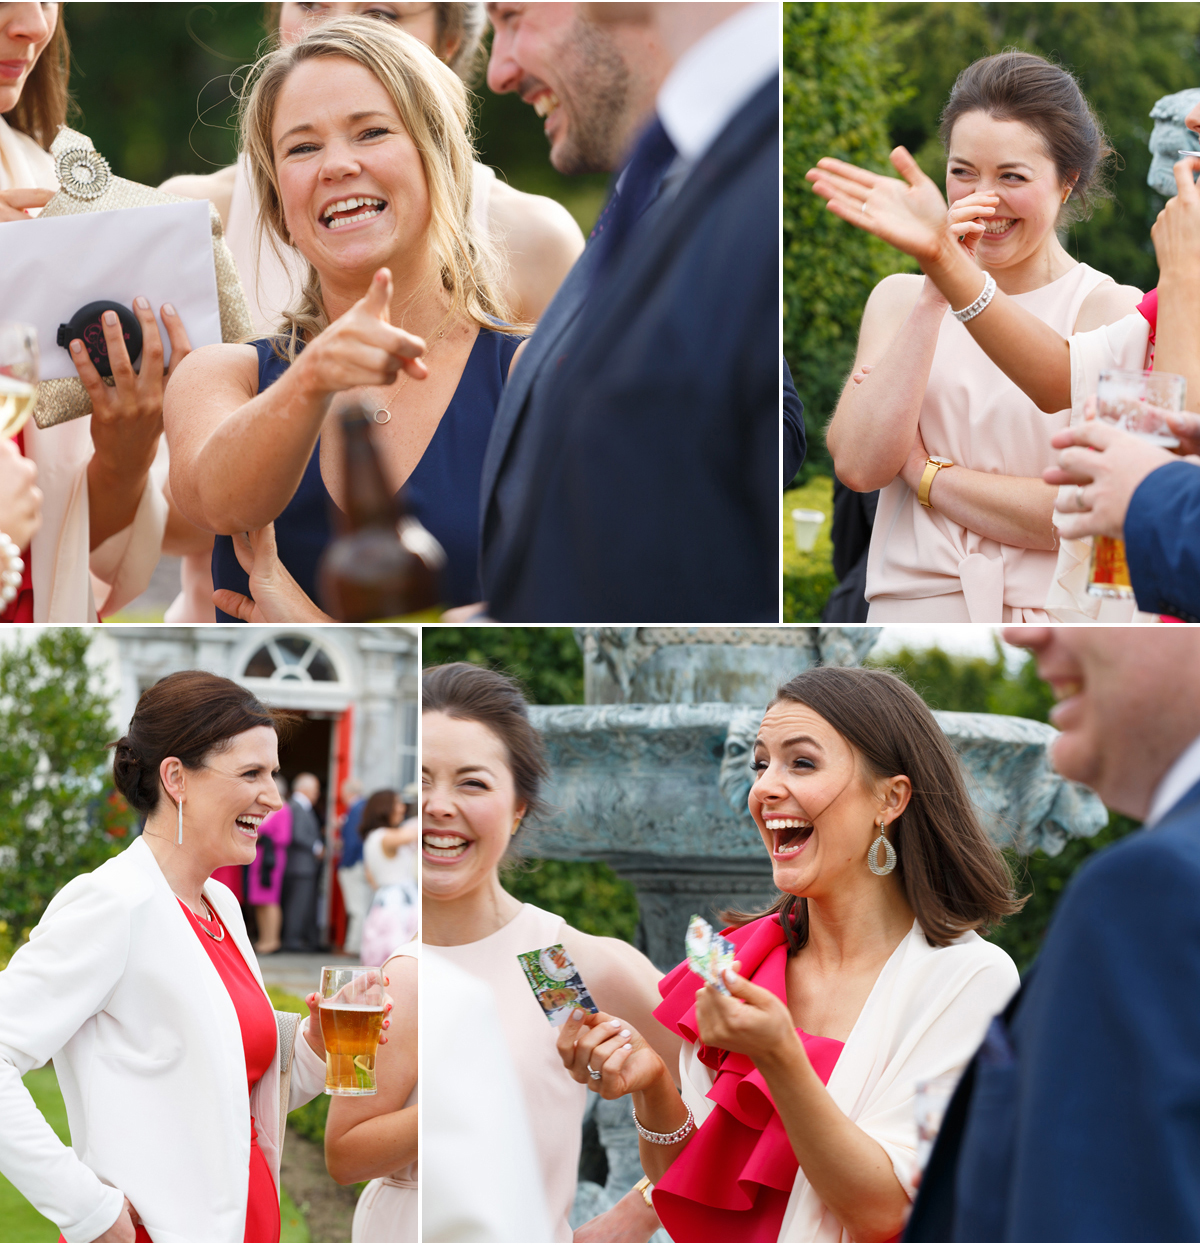 candid photographs of wedding guests